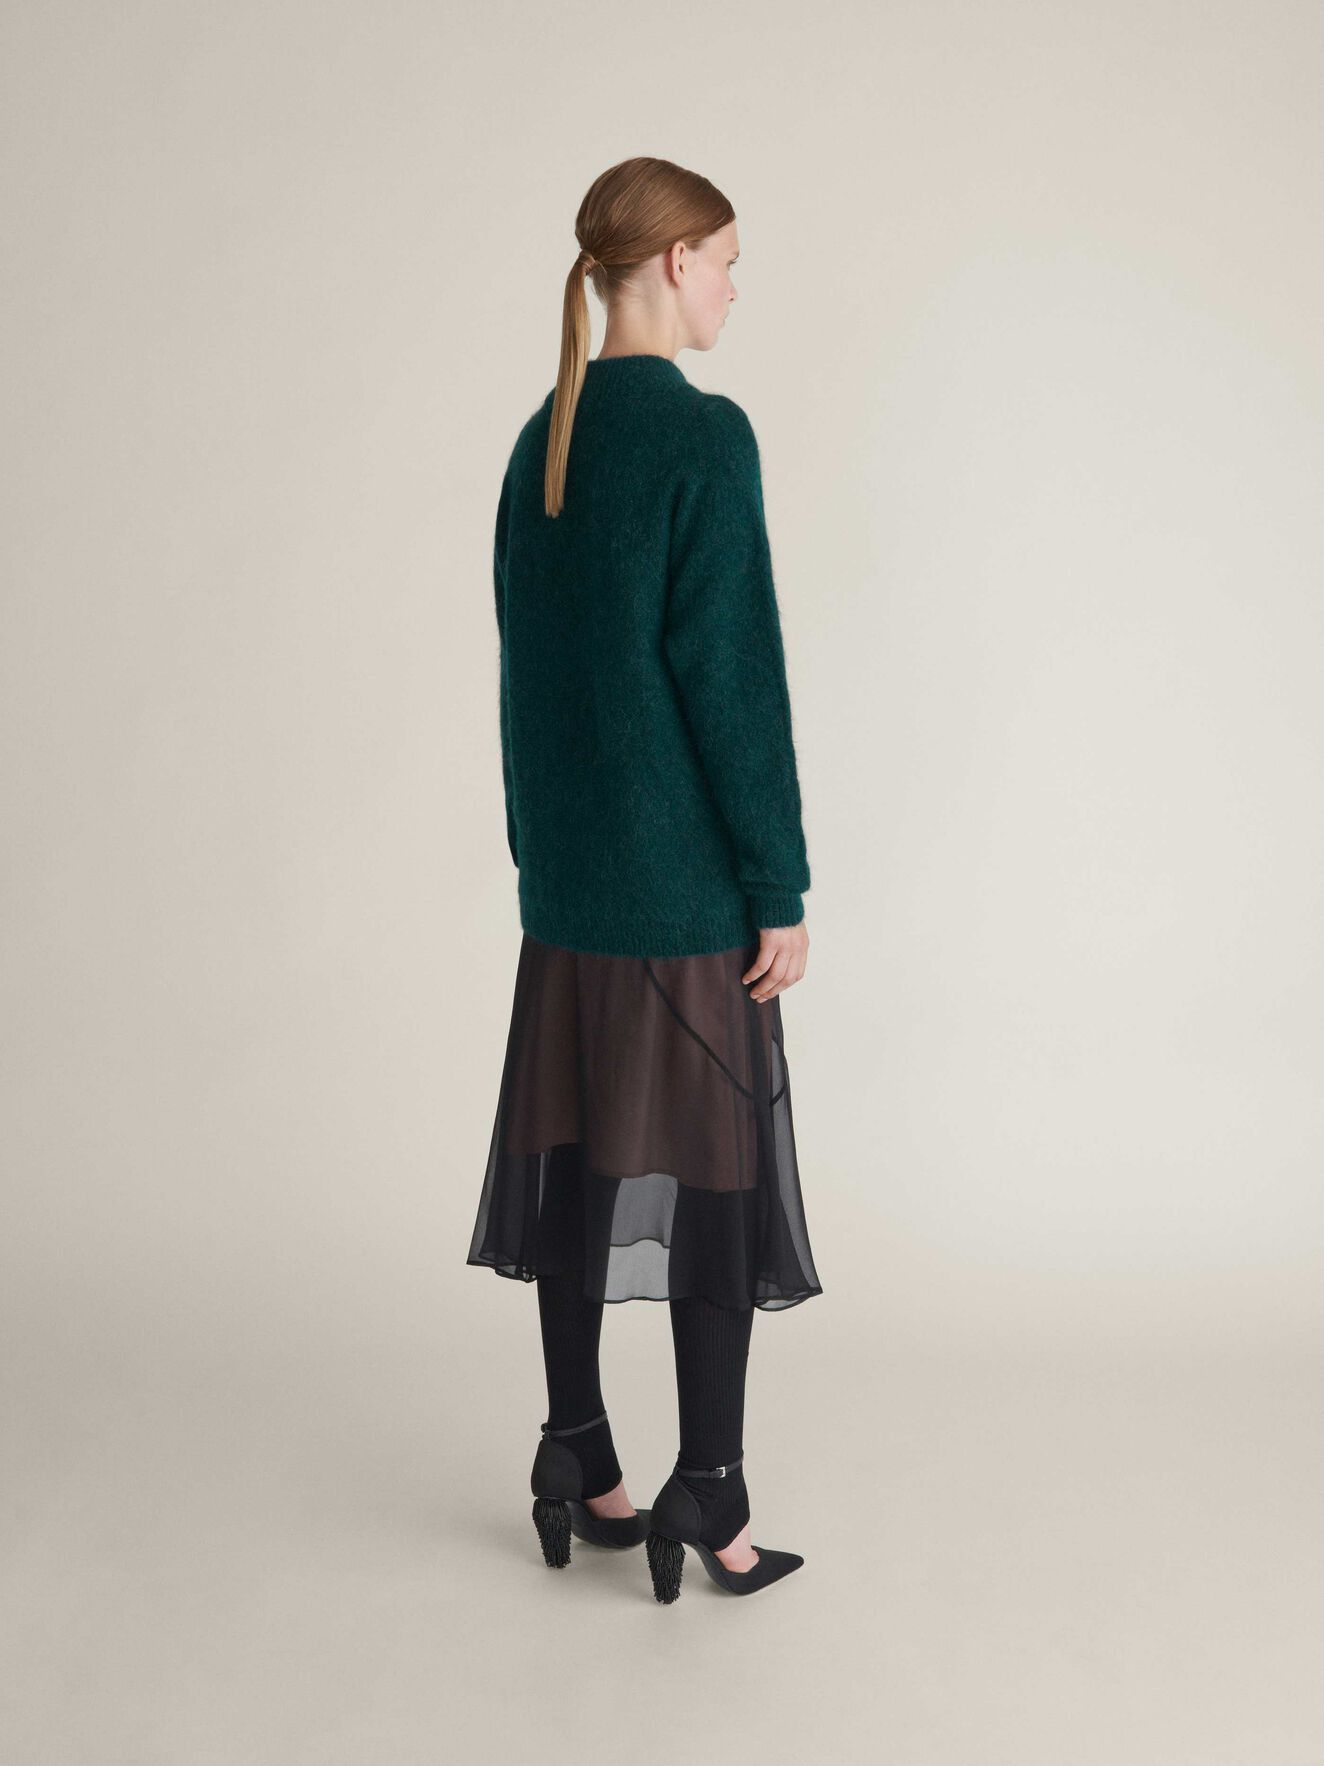 Cassio Pullover in Dark Forest from Tiger of Sweden